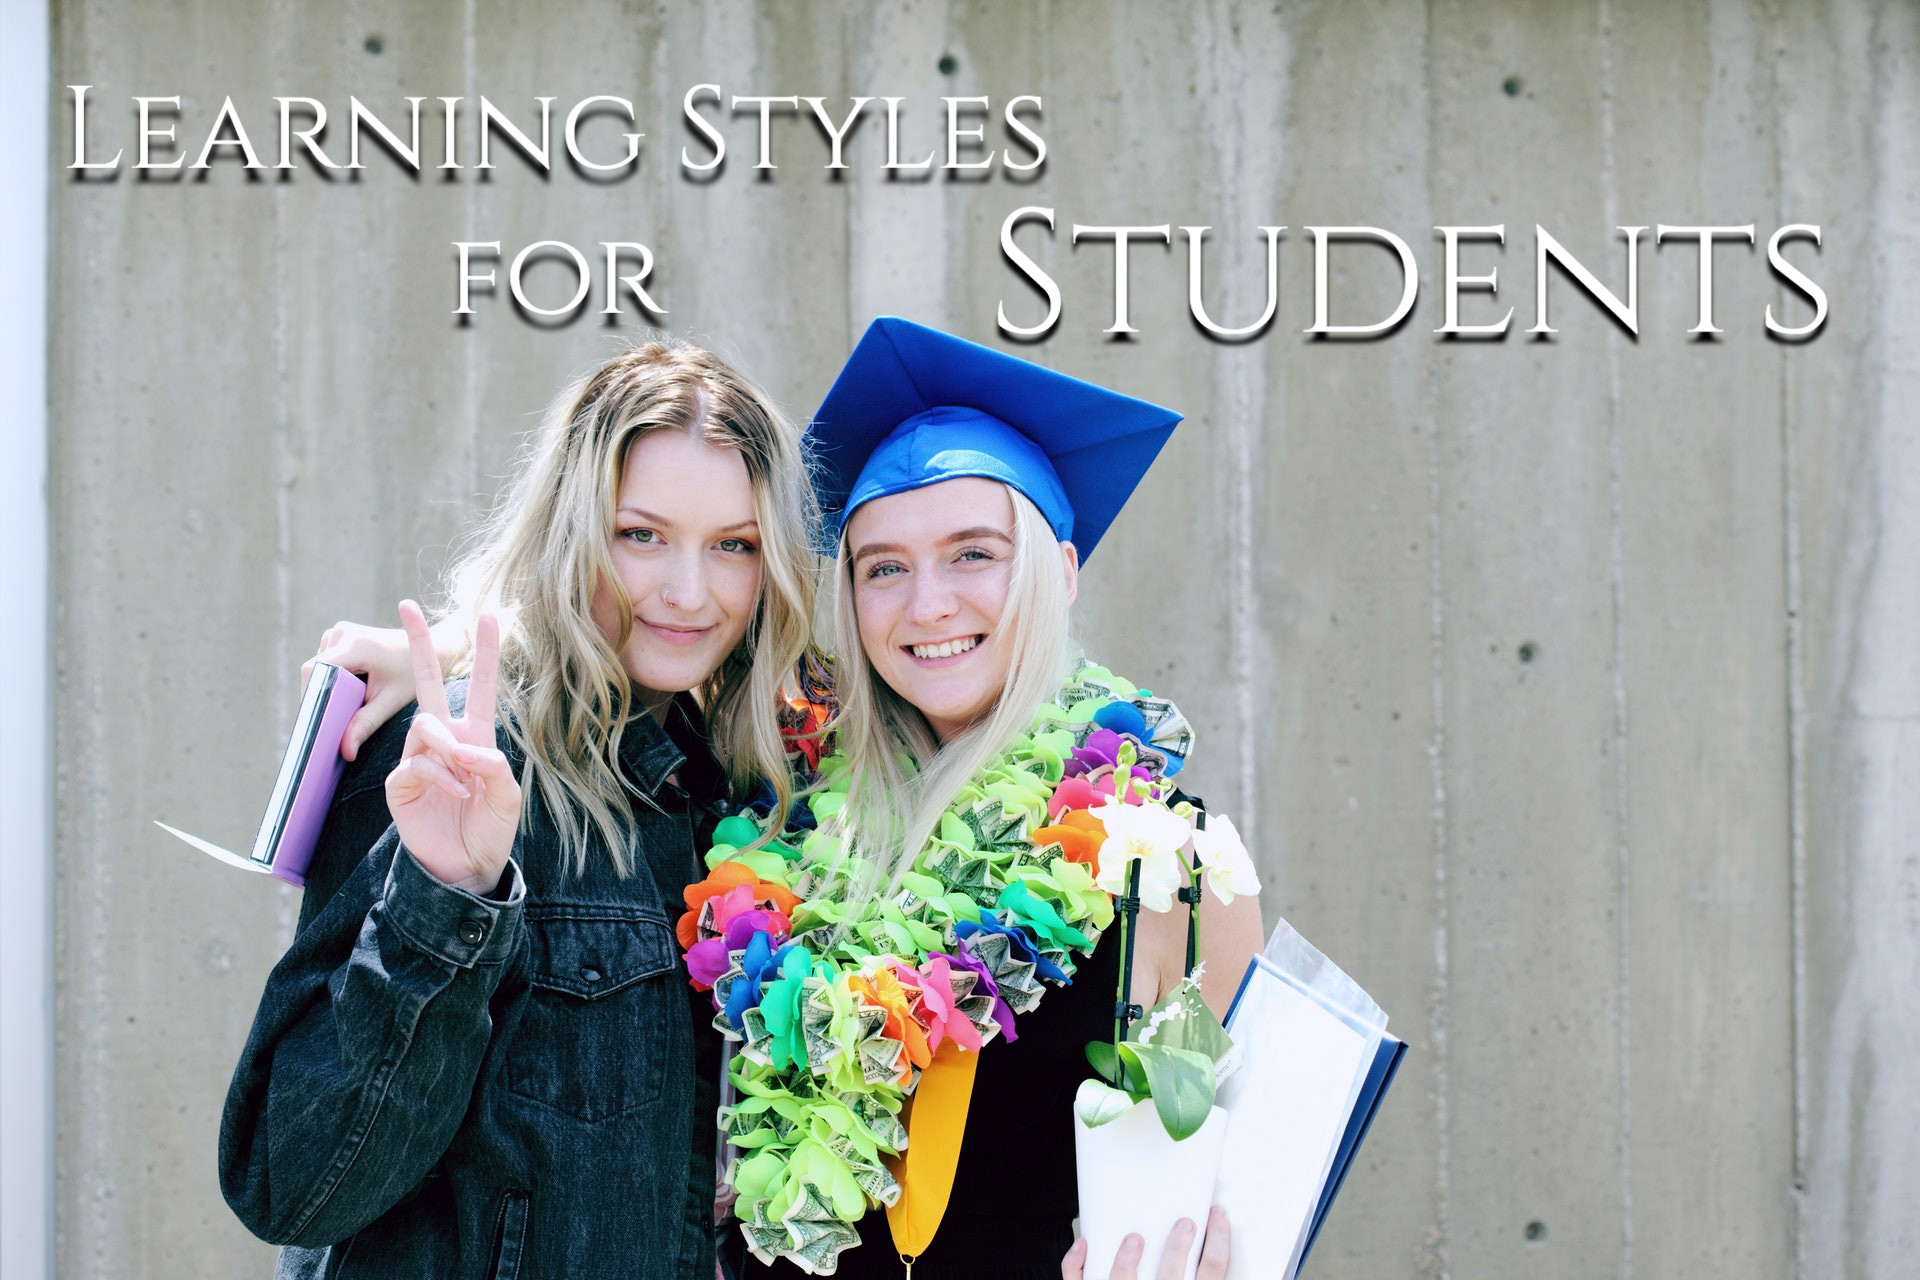 student learning styles,learning style quiz,learning styles,thinking styles,visual learning style,learning style assessment,learning style theory,type of learner test,multiple intelligences learning styles